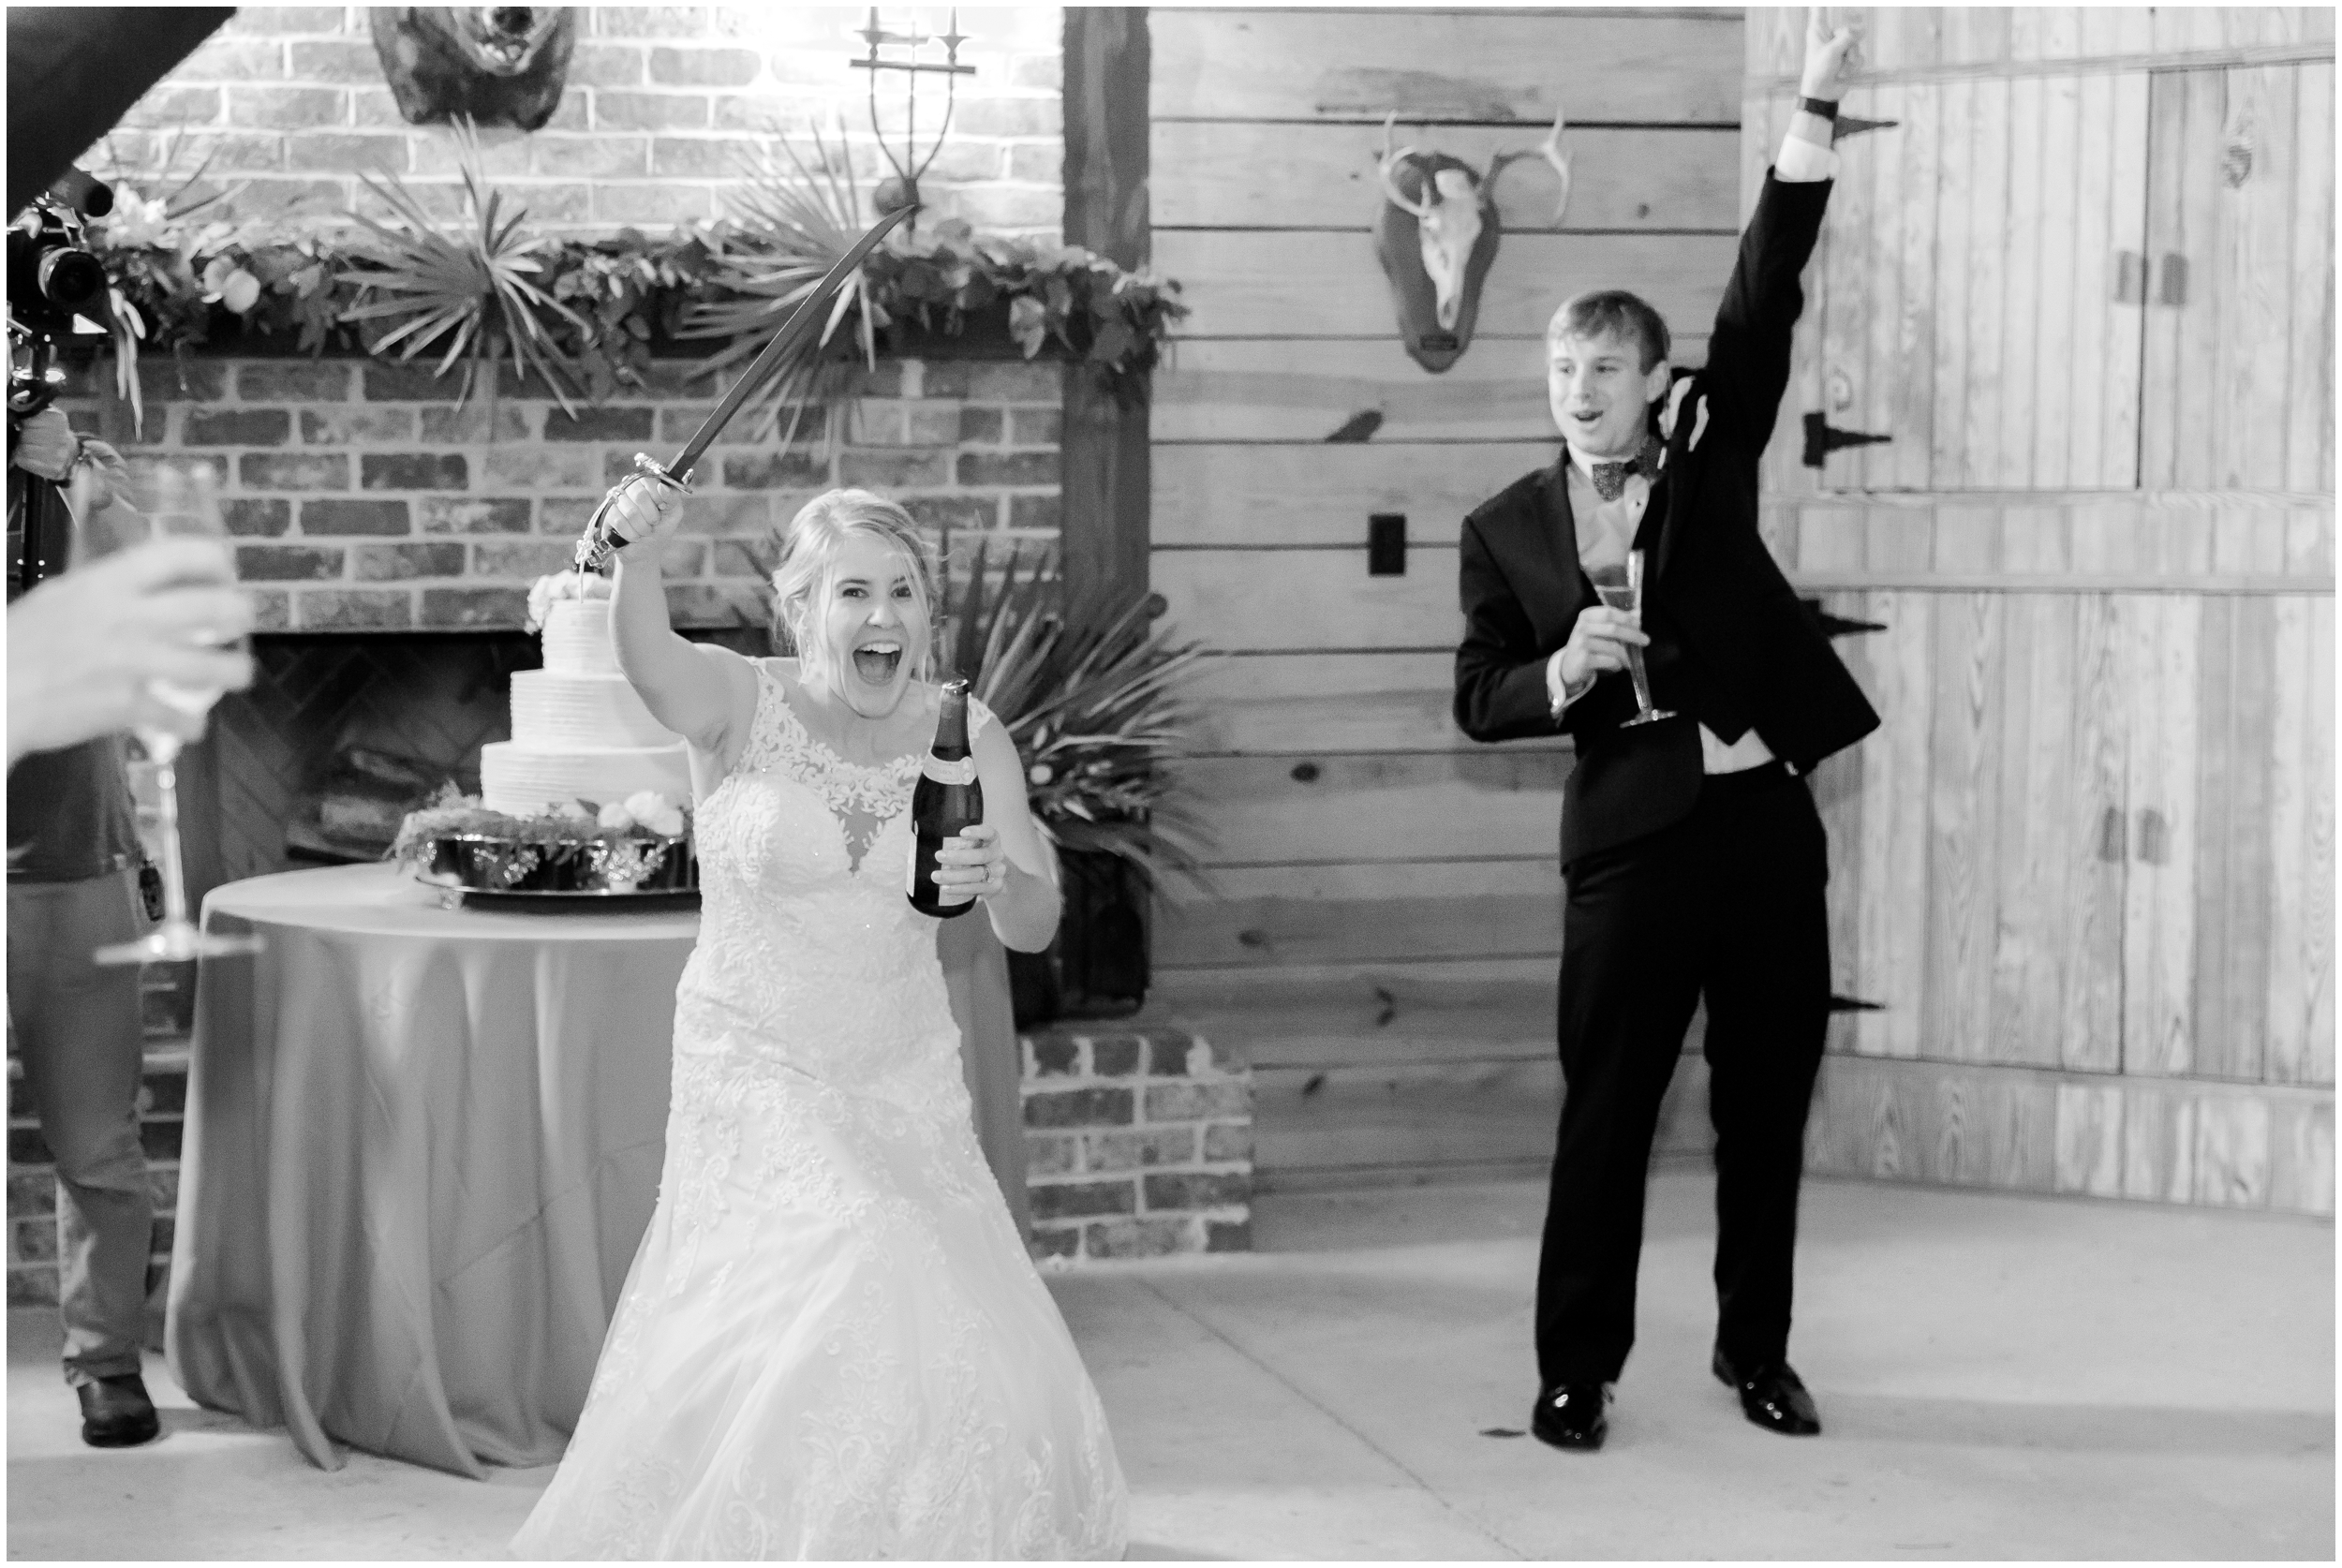 successful saber of champagne by bride